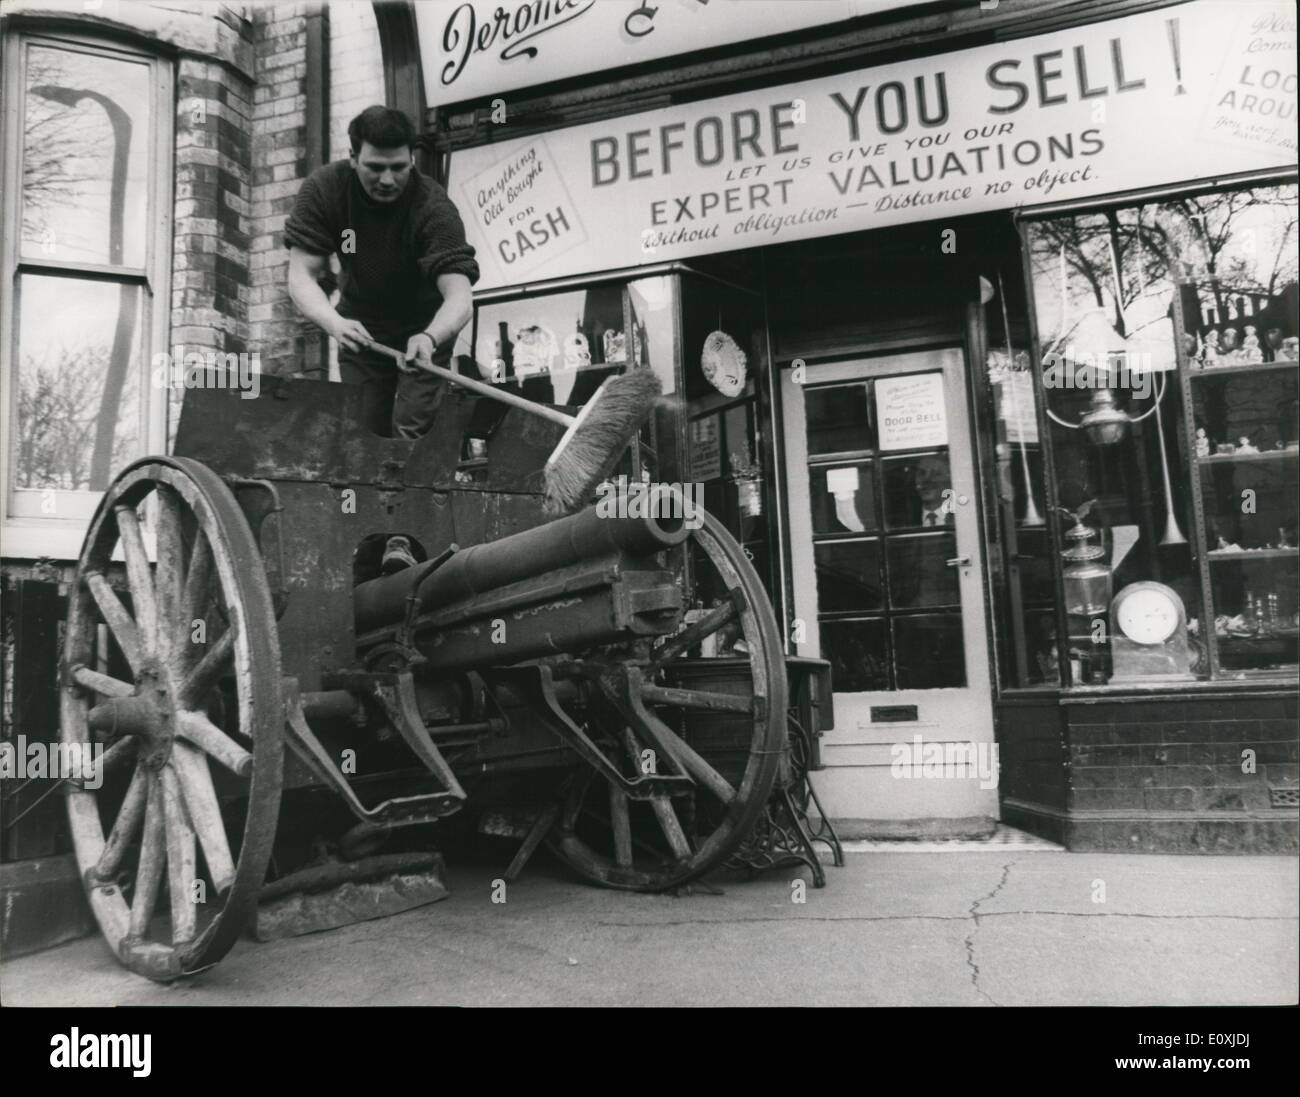 Feb. 02, 1967 - Antique German Field Gun for Sale : Standing on the forscourt outside the shop of antique dealer, Jerome Titus Walah, in Hull, is an 80mm. German field gun, a relio of the first World War. Until last summer, the gun reposed in the garden of an elderly ex-colonel who brought the gun back in 1918 as a souvenir. When he died, his widow sold the gun to Mr.Walsh. Not with standing the gun's condition - Mr.Walsh reckons it has had no maintenance in 50 years and would need a complete overhaul before anyone could fire it - the gun like it in Britian - in a London war museum - Stock Image